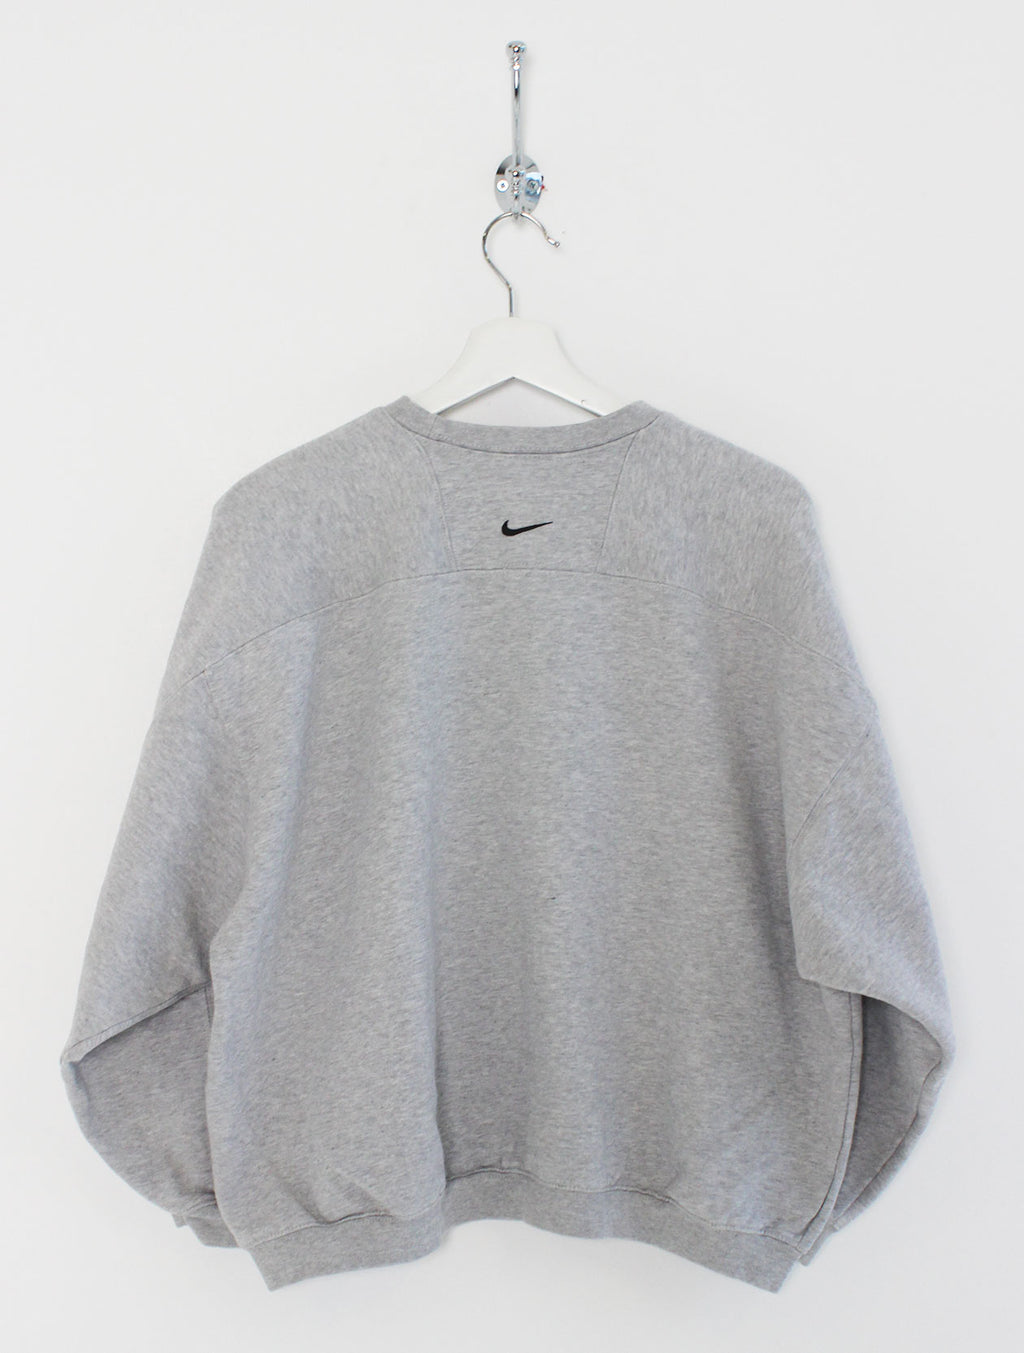 Women's Nike Sweatshirt (L)